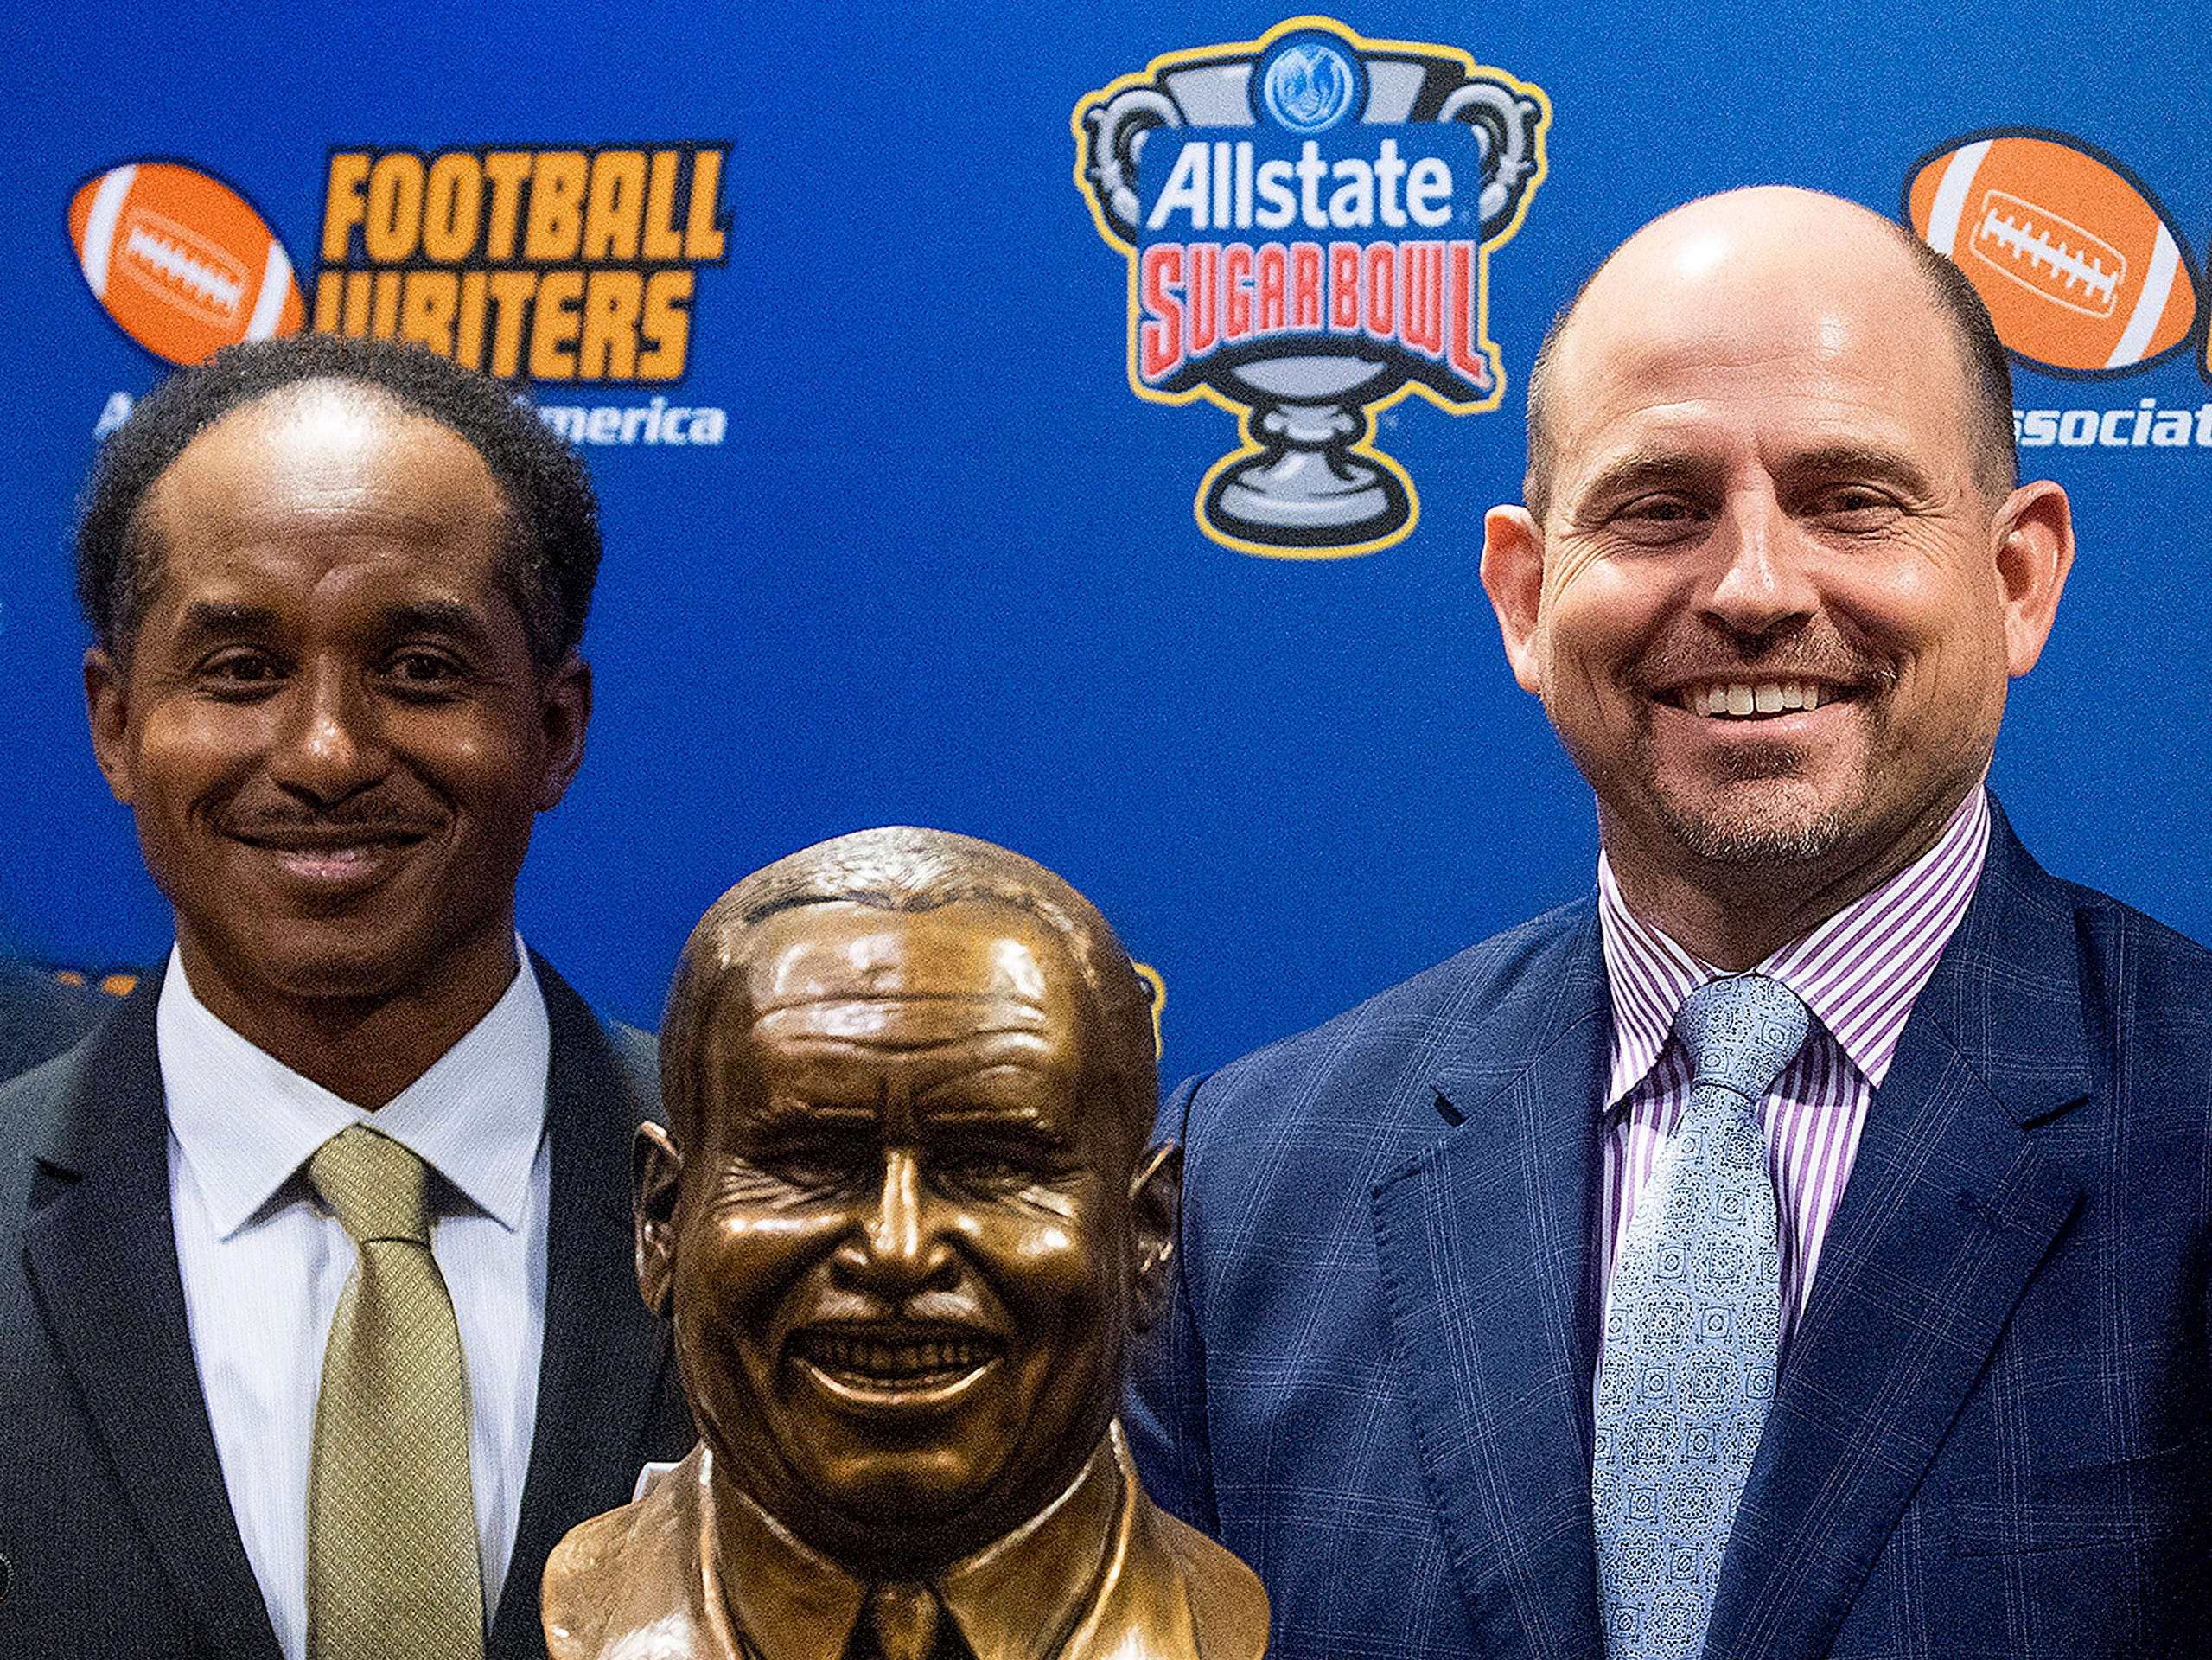 UAB football coach Bill Clark stands with Eddie Robinson, III, as he is presented the Eddie Robinson Coach of the Year Award during a ceremony in San Jose, Ca., on Saturday January 5, 2019.